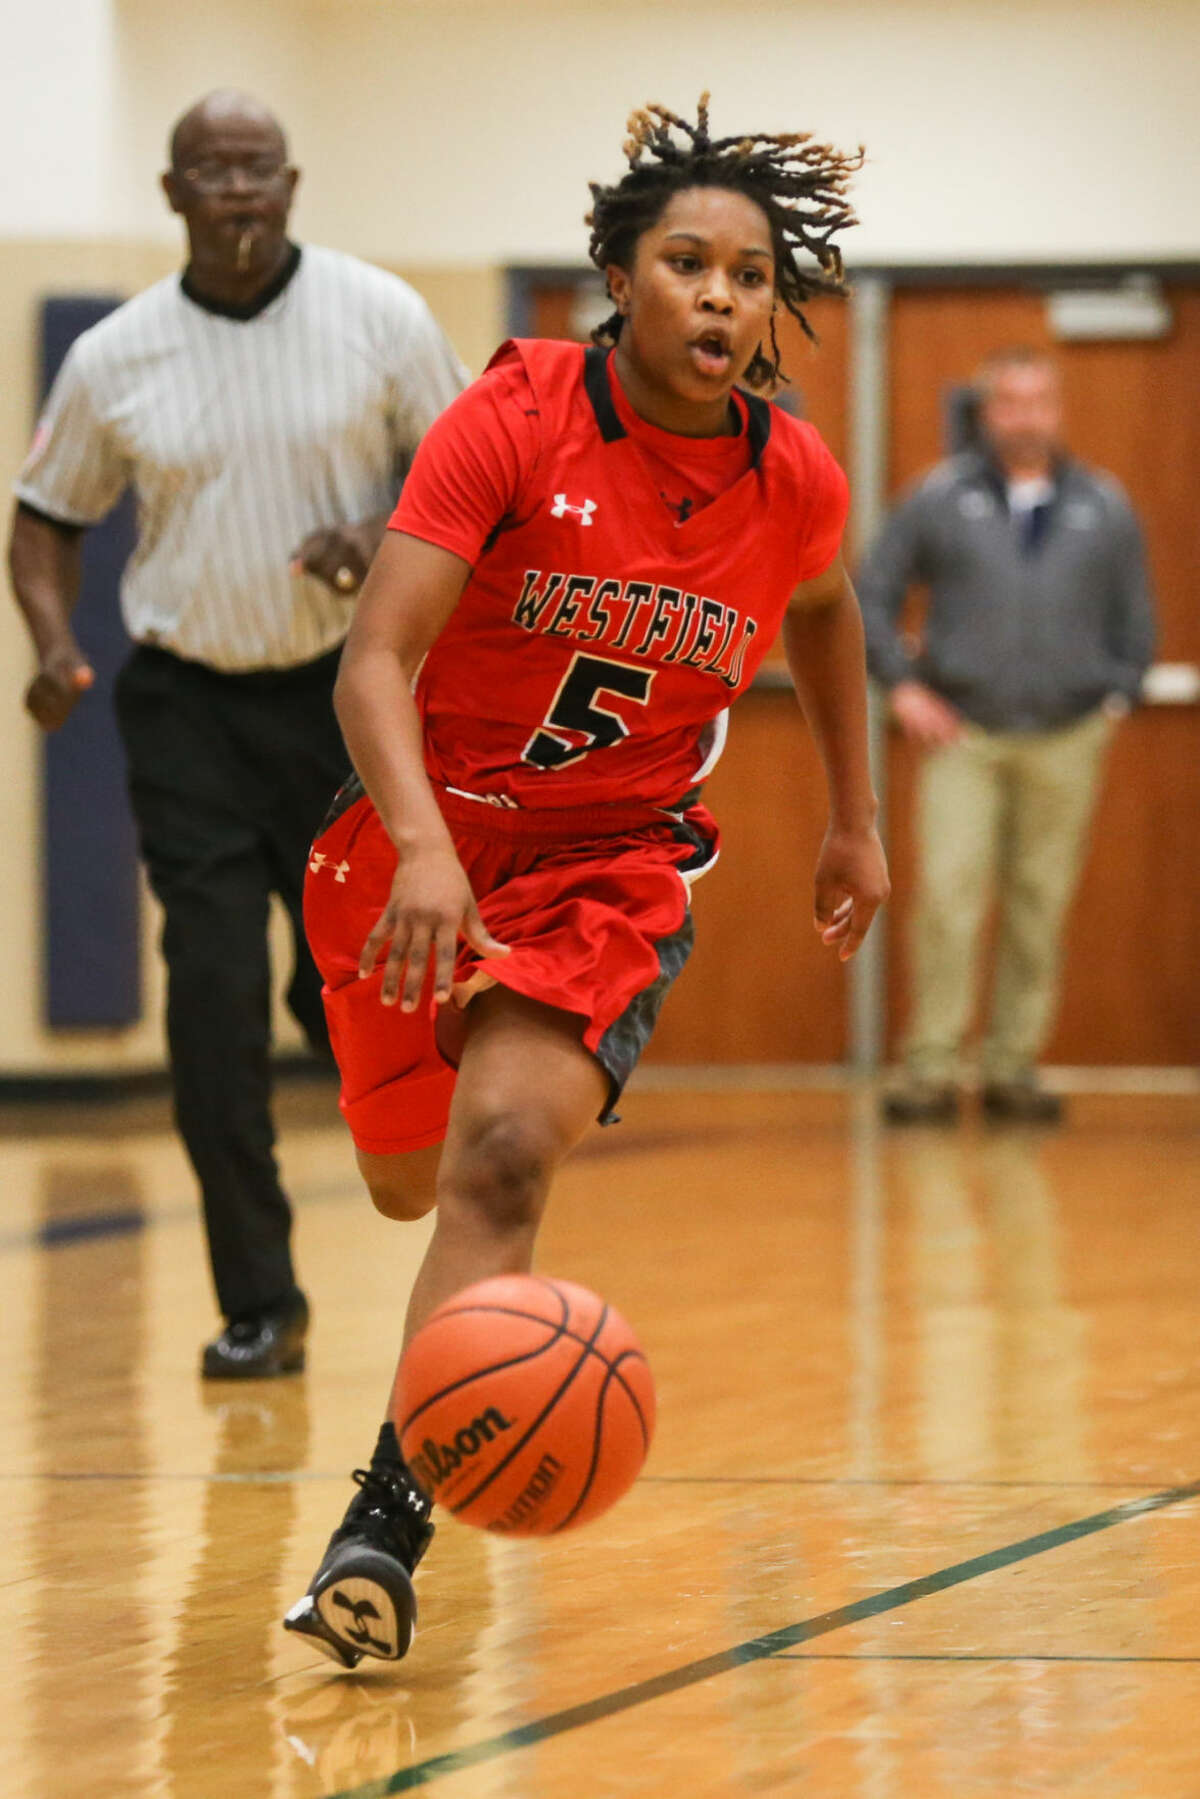 Westfield's Faitress Shaw (5) tries to get past College Park defenders during the high school girls basketball game on Tuesday, Dec. 9, 2014, at College Park High School.